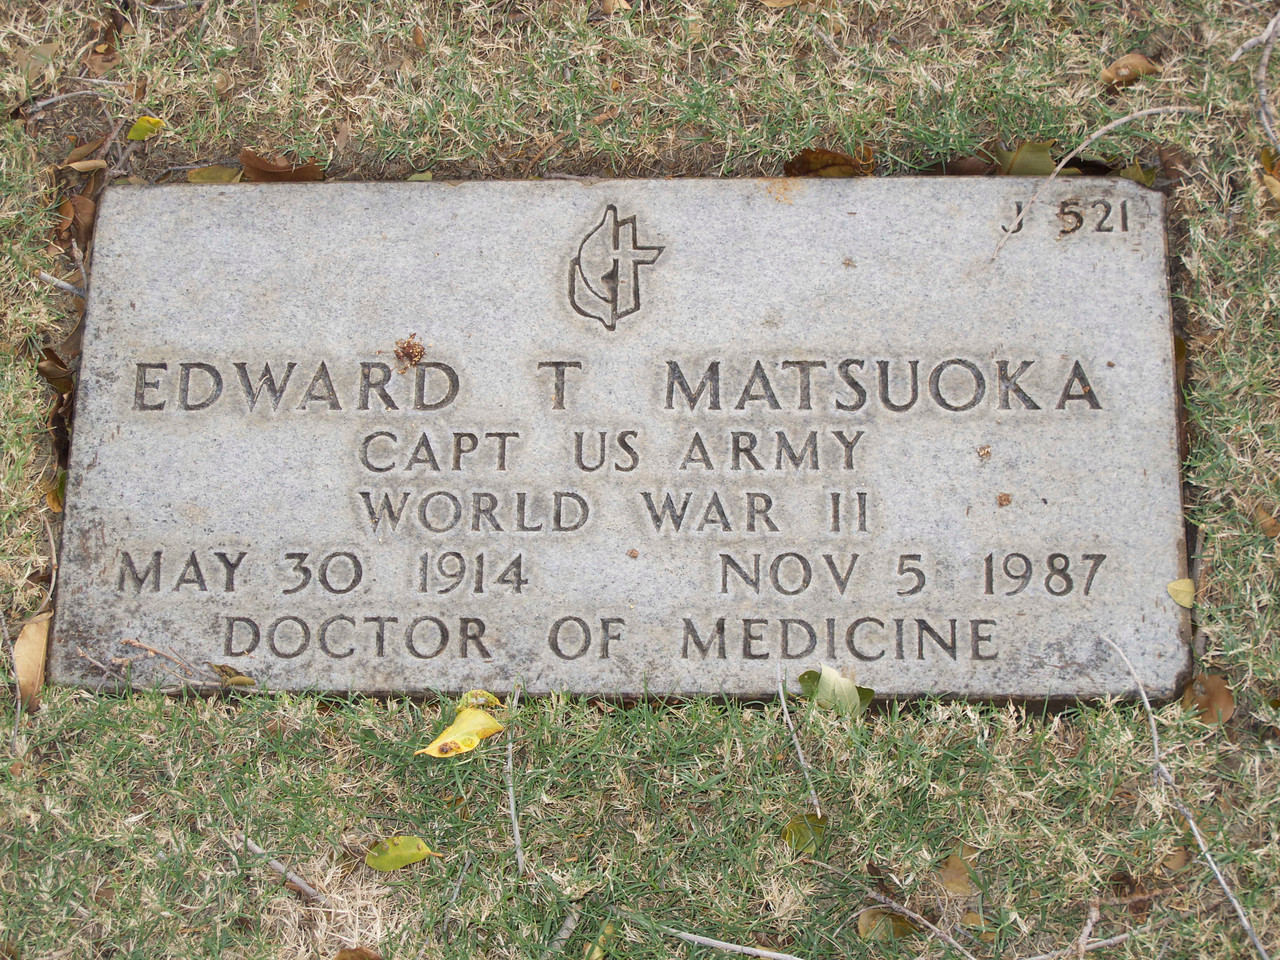 Dr. Matsuoka was born in Olaa, Hawaii. He received his medical degree in 1941, and he was a battlefront surgeon who received the Bronze Star for his part in the Battle of the Bulge. The symbol above his name is of the United Methodist Church.